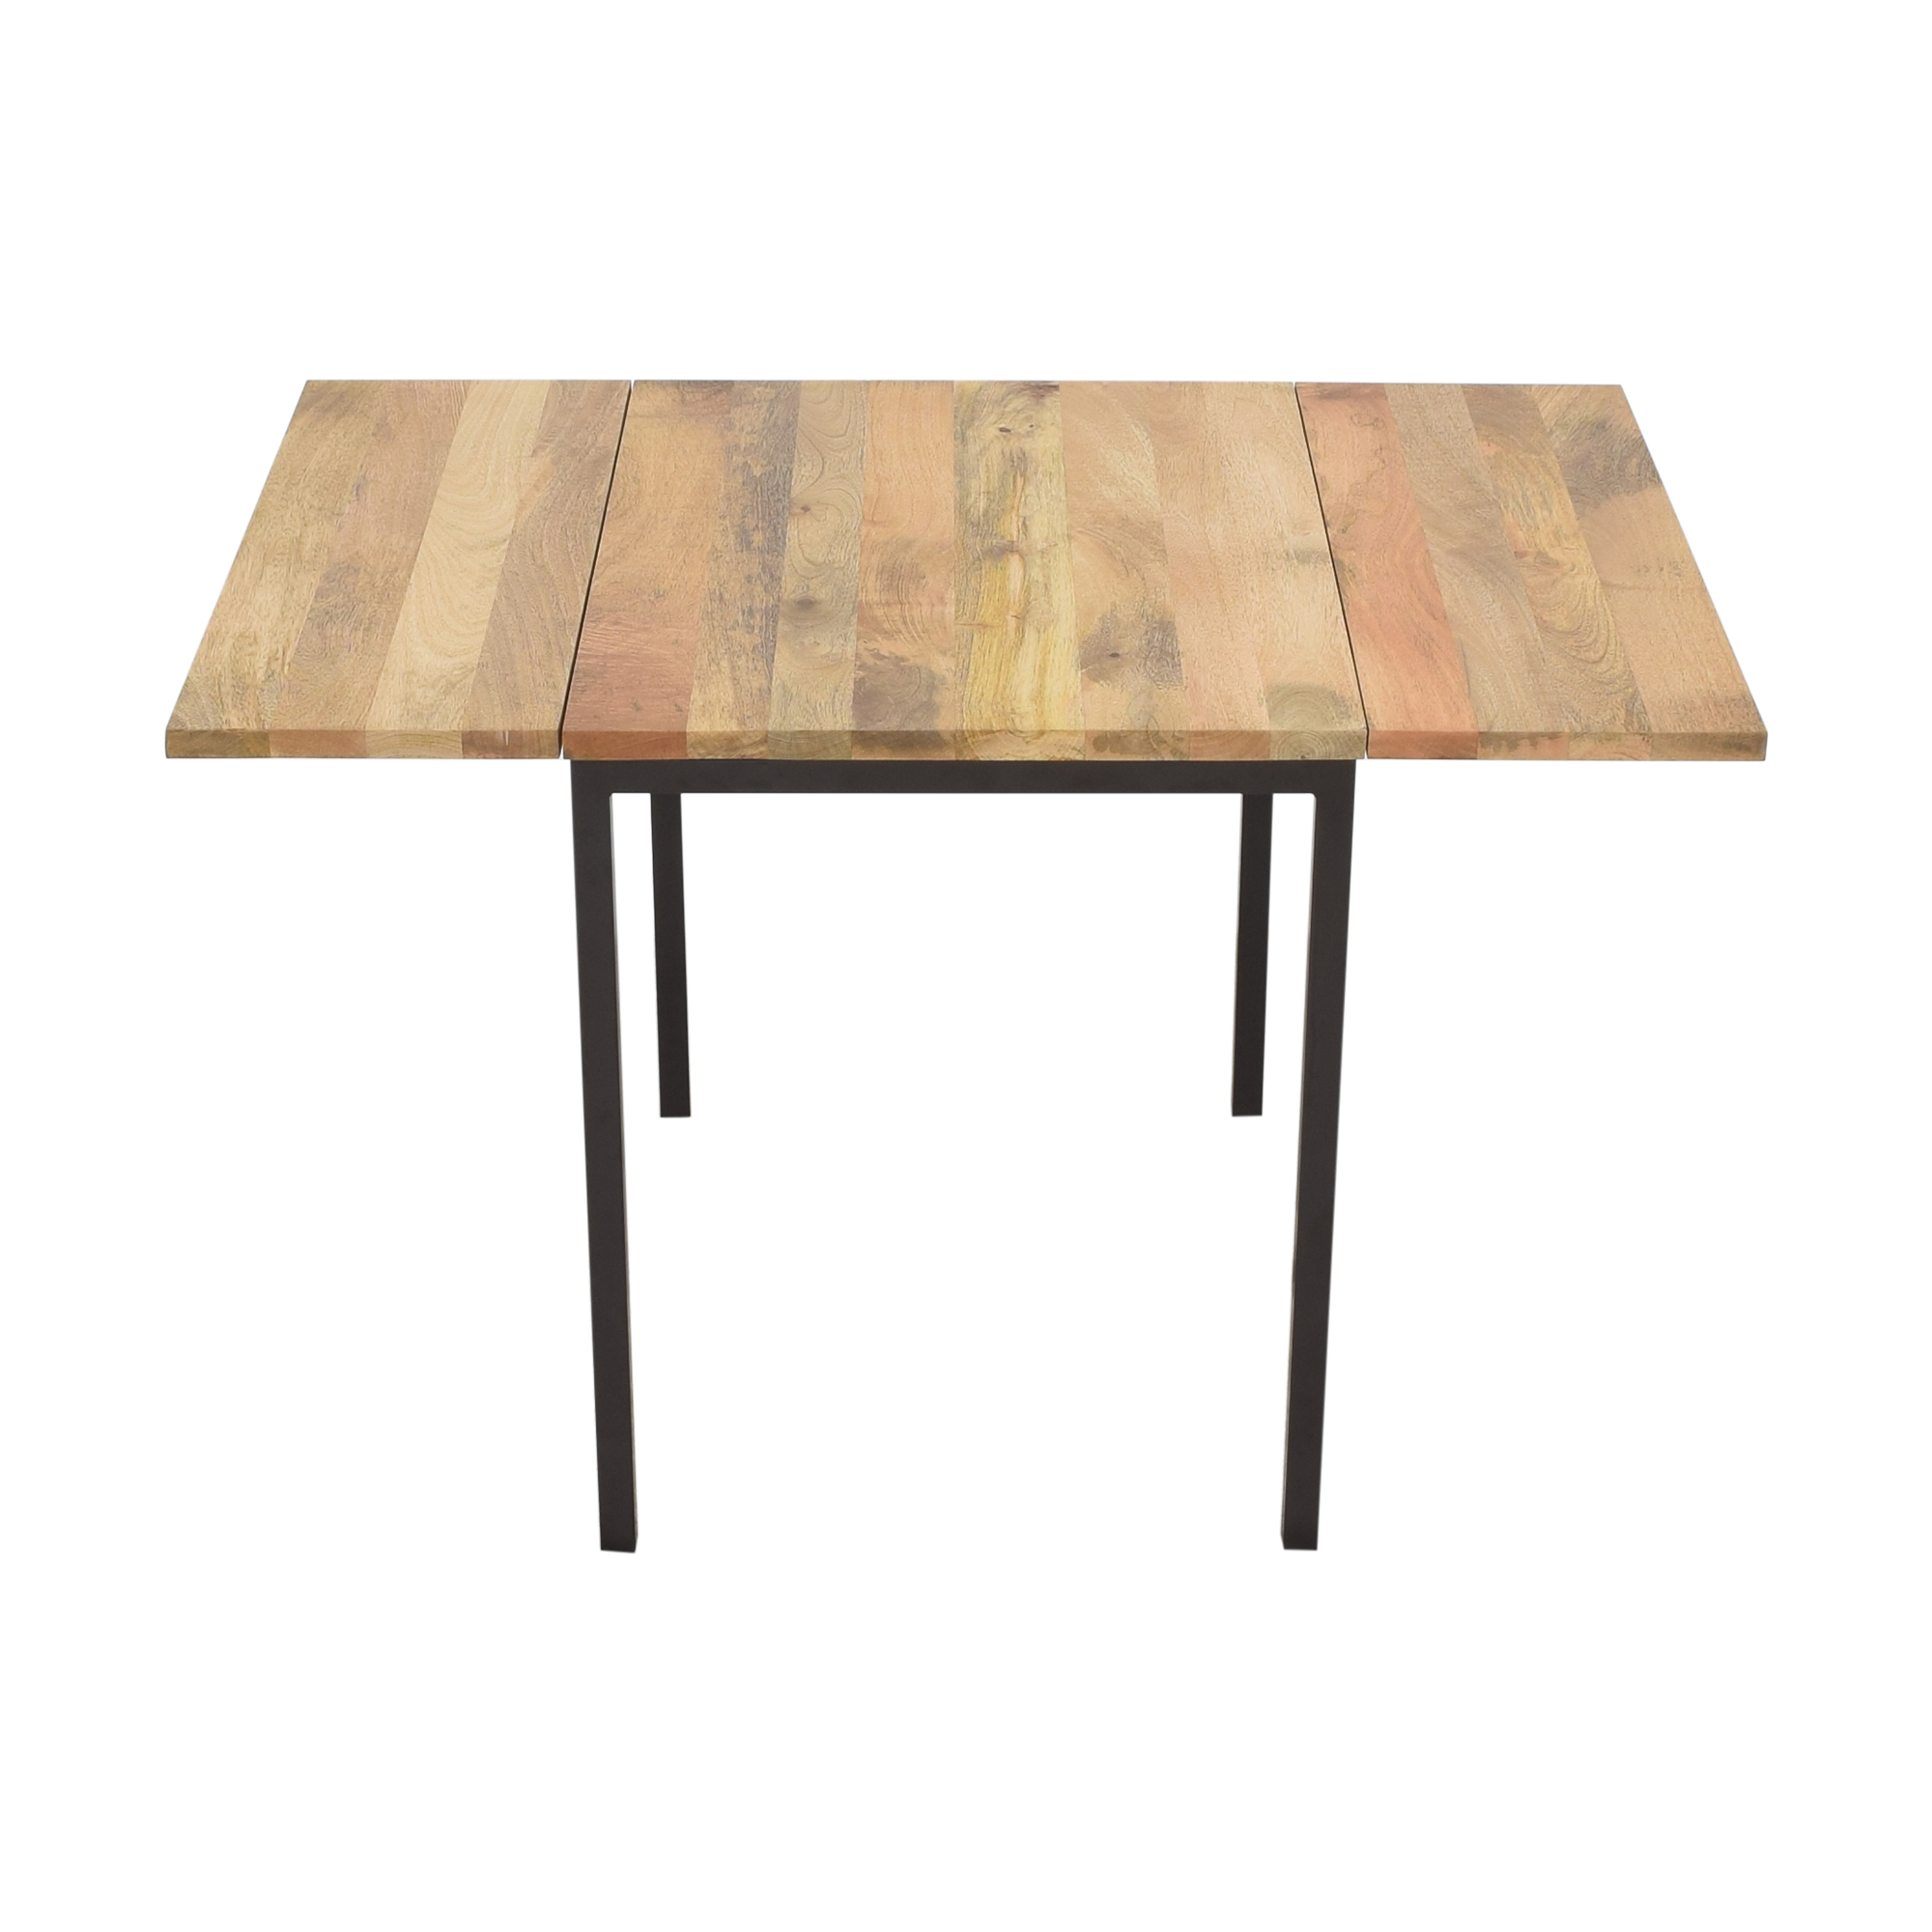 West Elm West Elm Box Frame Drop Leaf Dining Table for sale